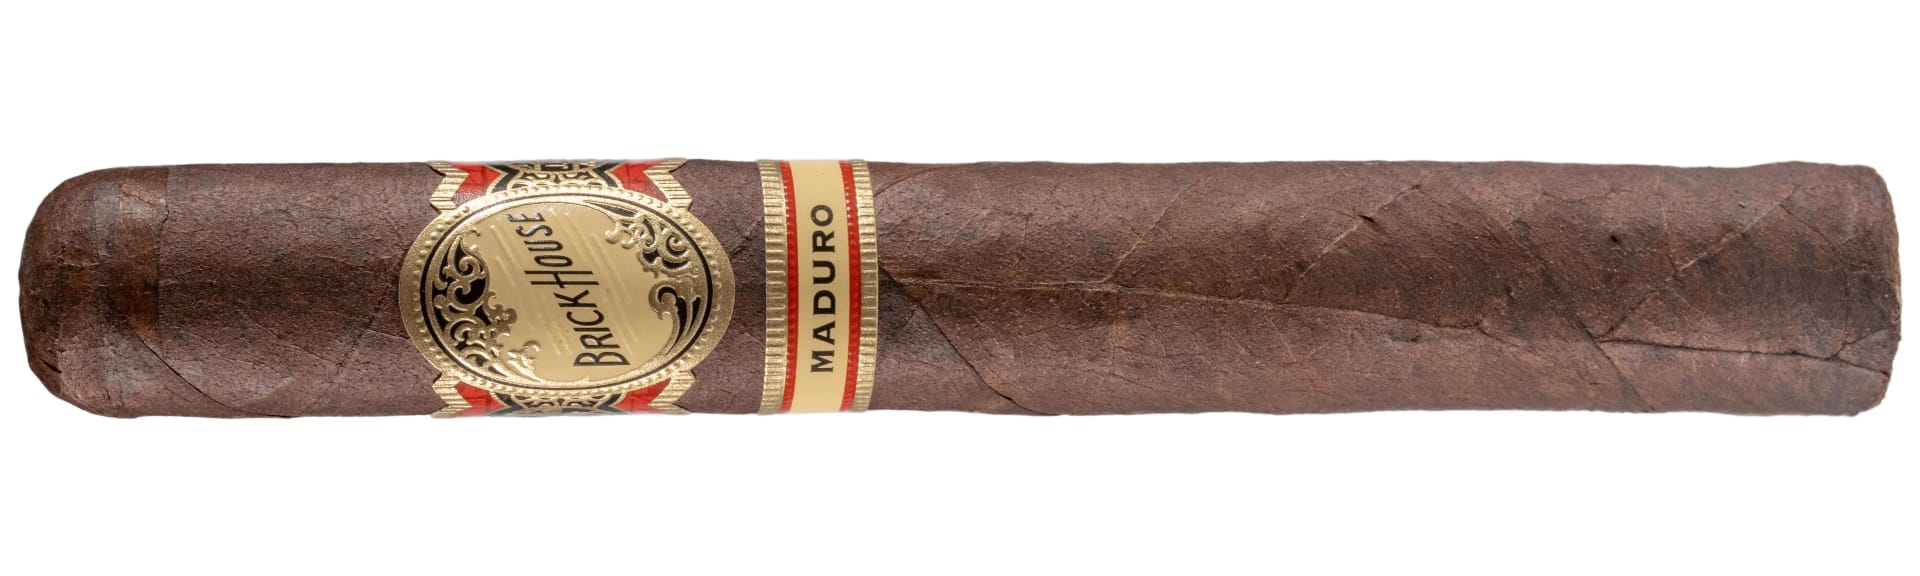 Blind Cigar Review: Brick House | Maduro Toro Featured Image